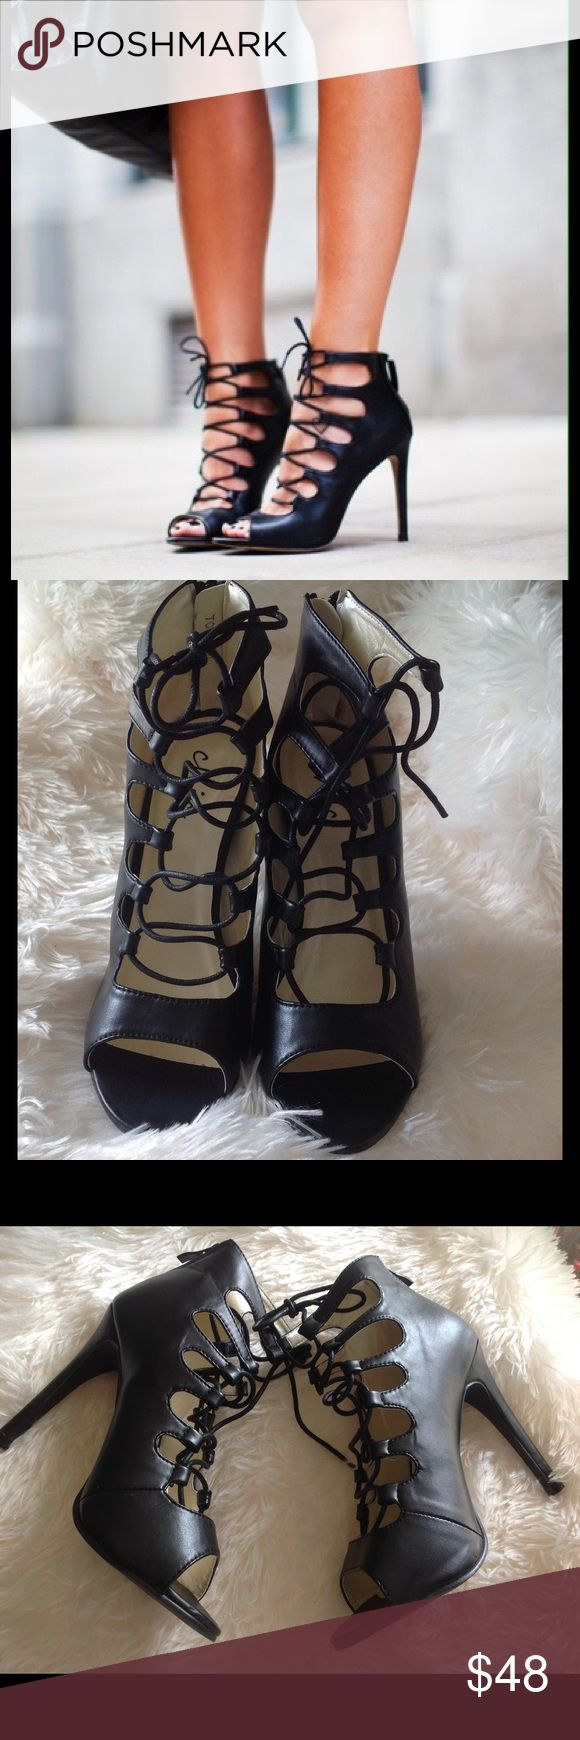 """Black faux leather Lace Up Heels  Brand New No Box From England. Faux leather Lace ups. 4"""" heel. UK size 6. US size 8. Best selling style. Very similar to Zara, but, these are by CHIC. No box, but brand new. Zara Shoes Heels"""